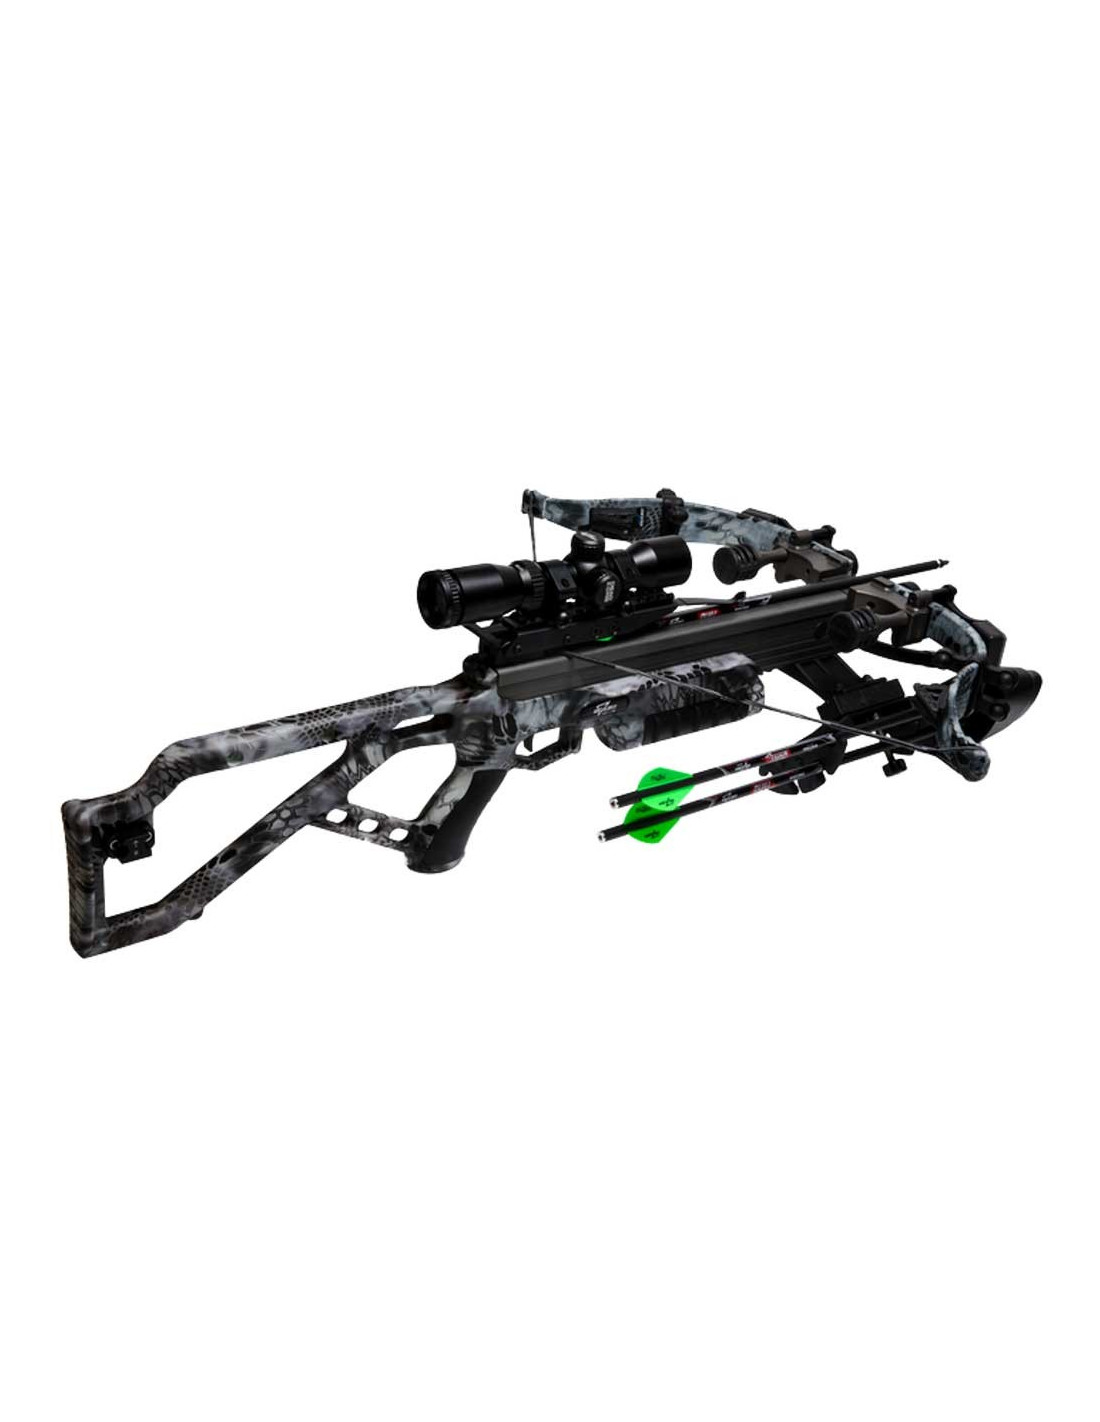 Crossbow Excalibur AX 340 Kryptek Raid 340 fps 270 lbs